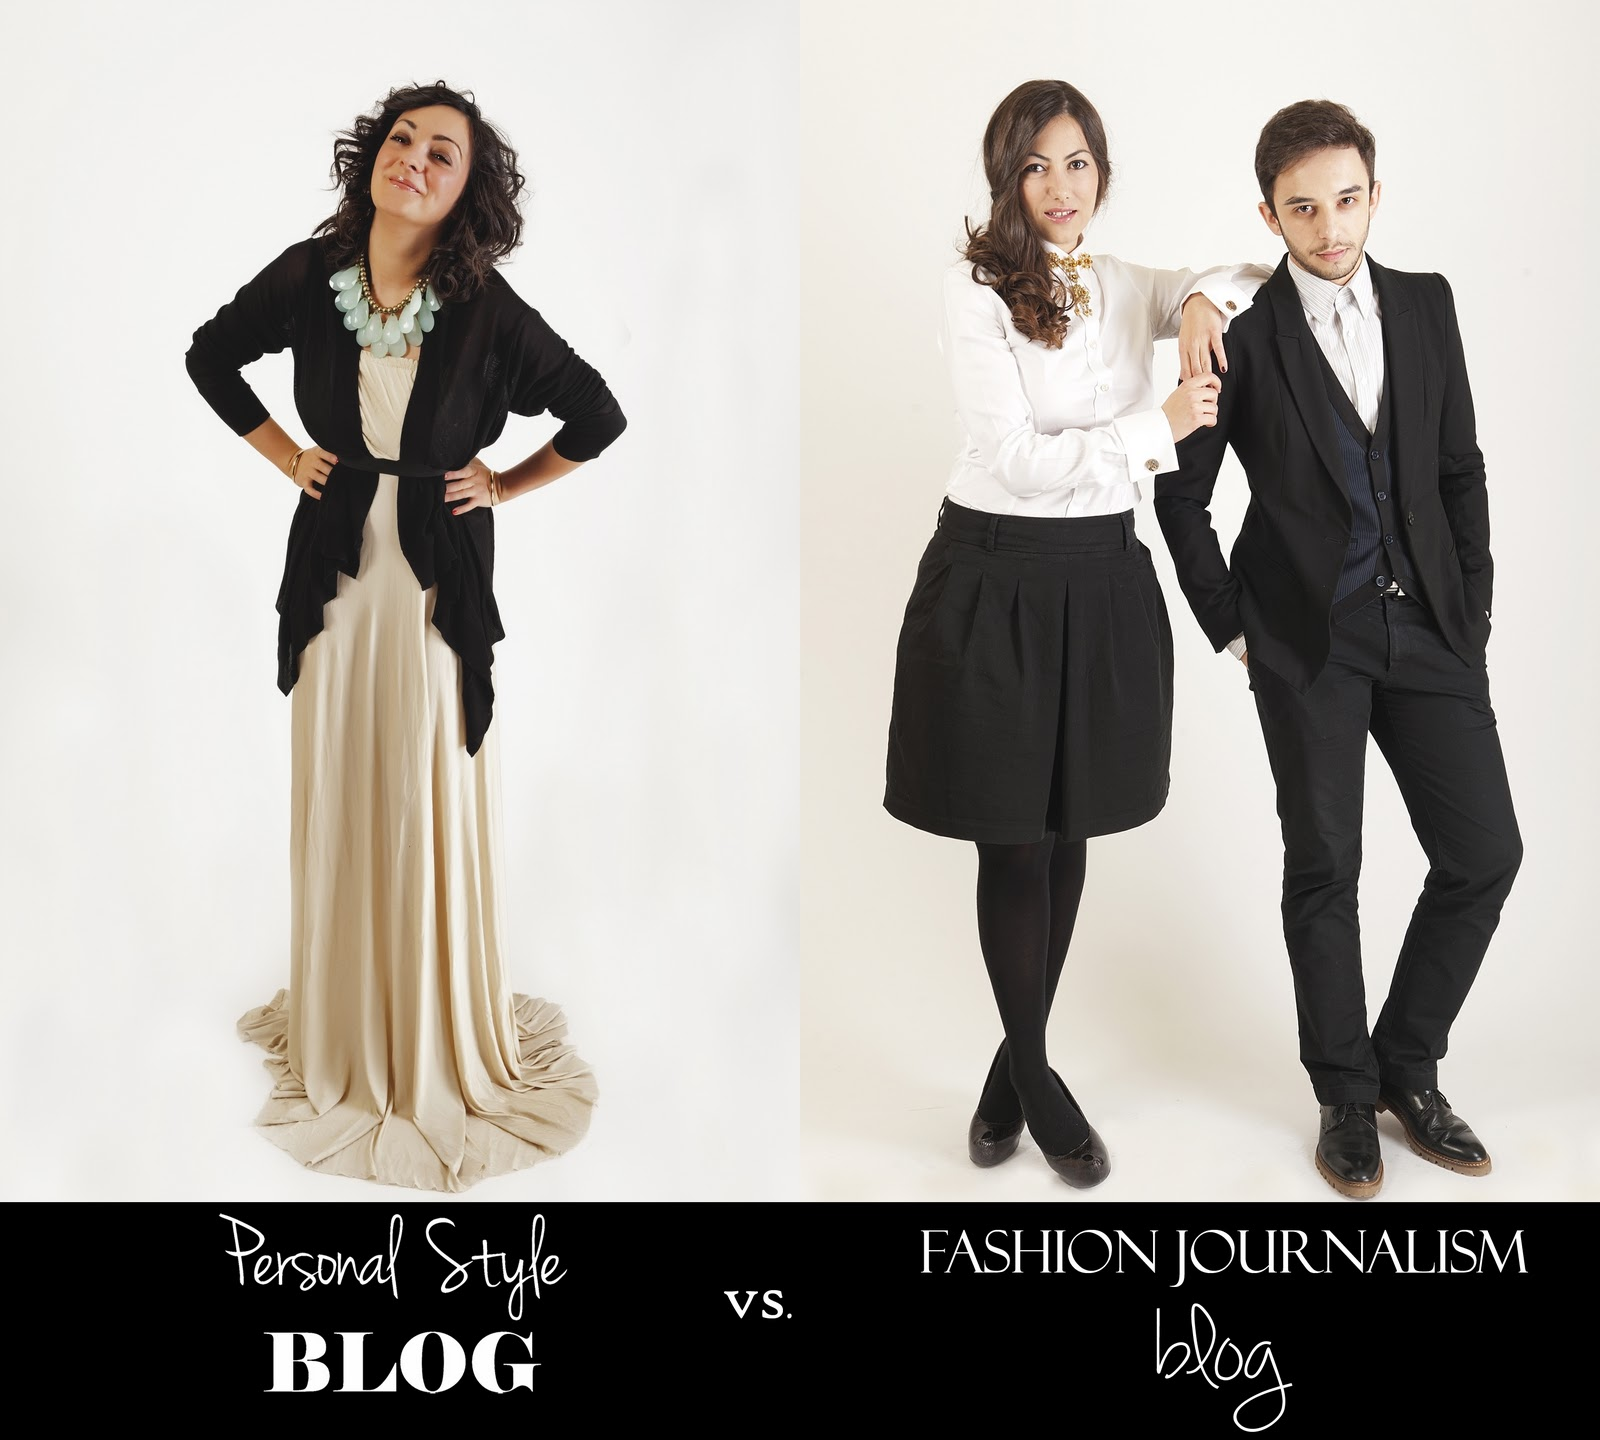 Personal Style Blog Vs Fashion Journalism Blog